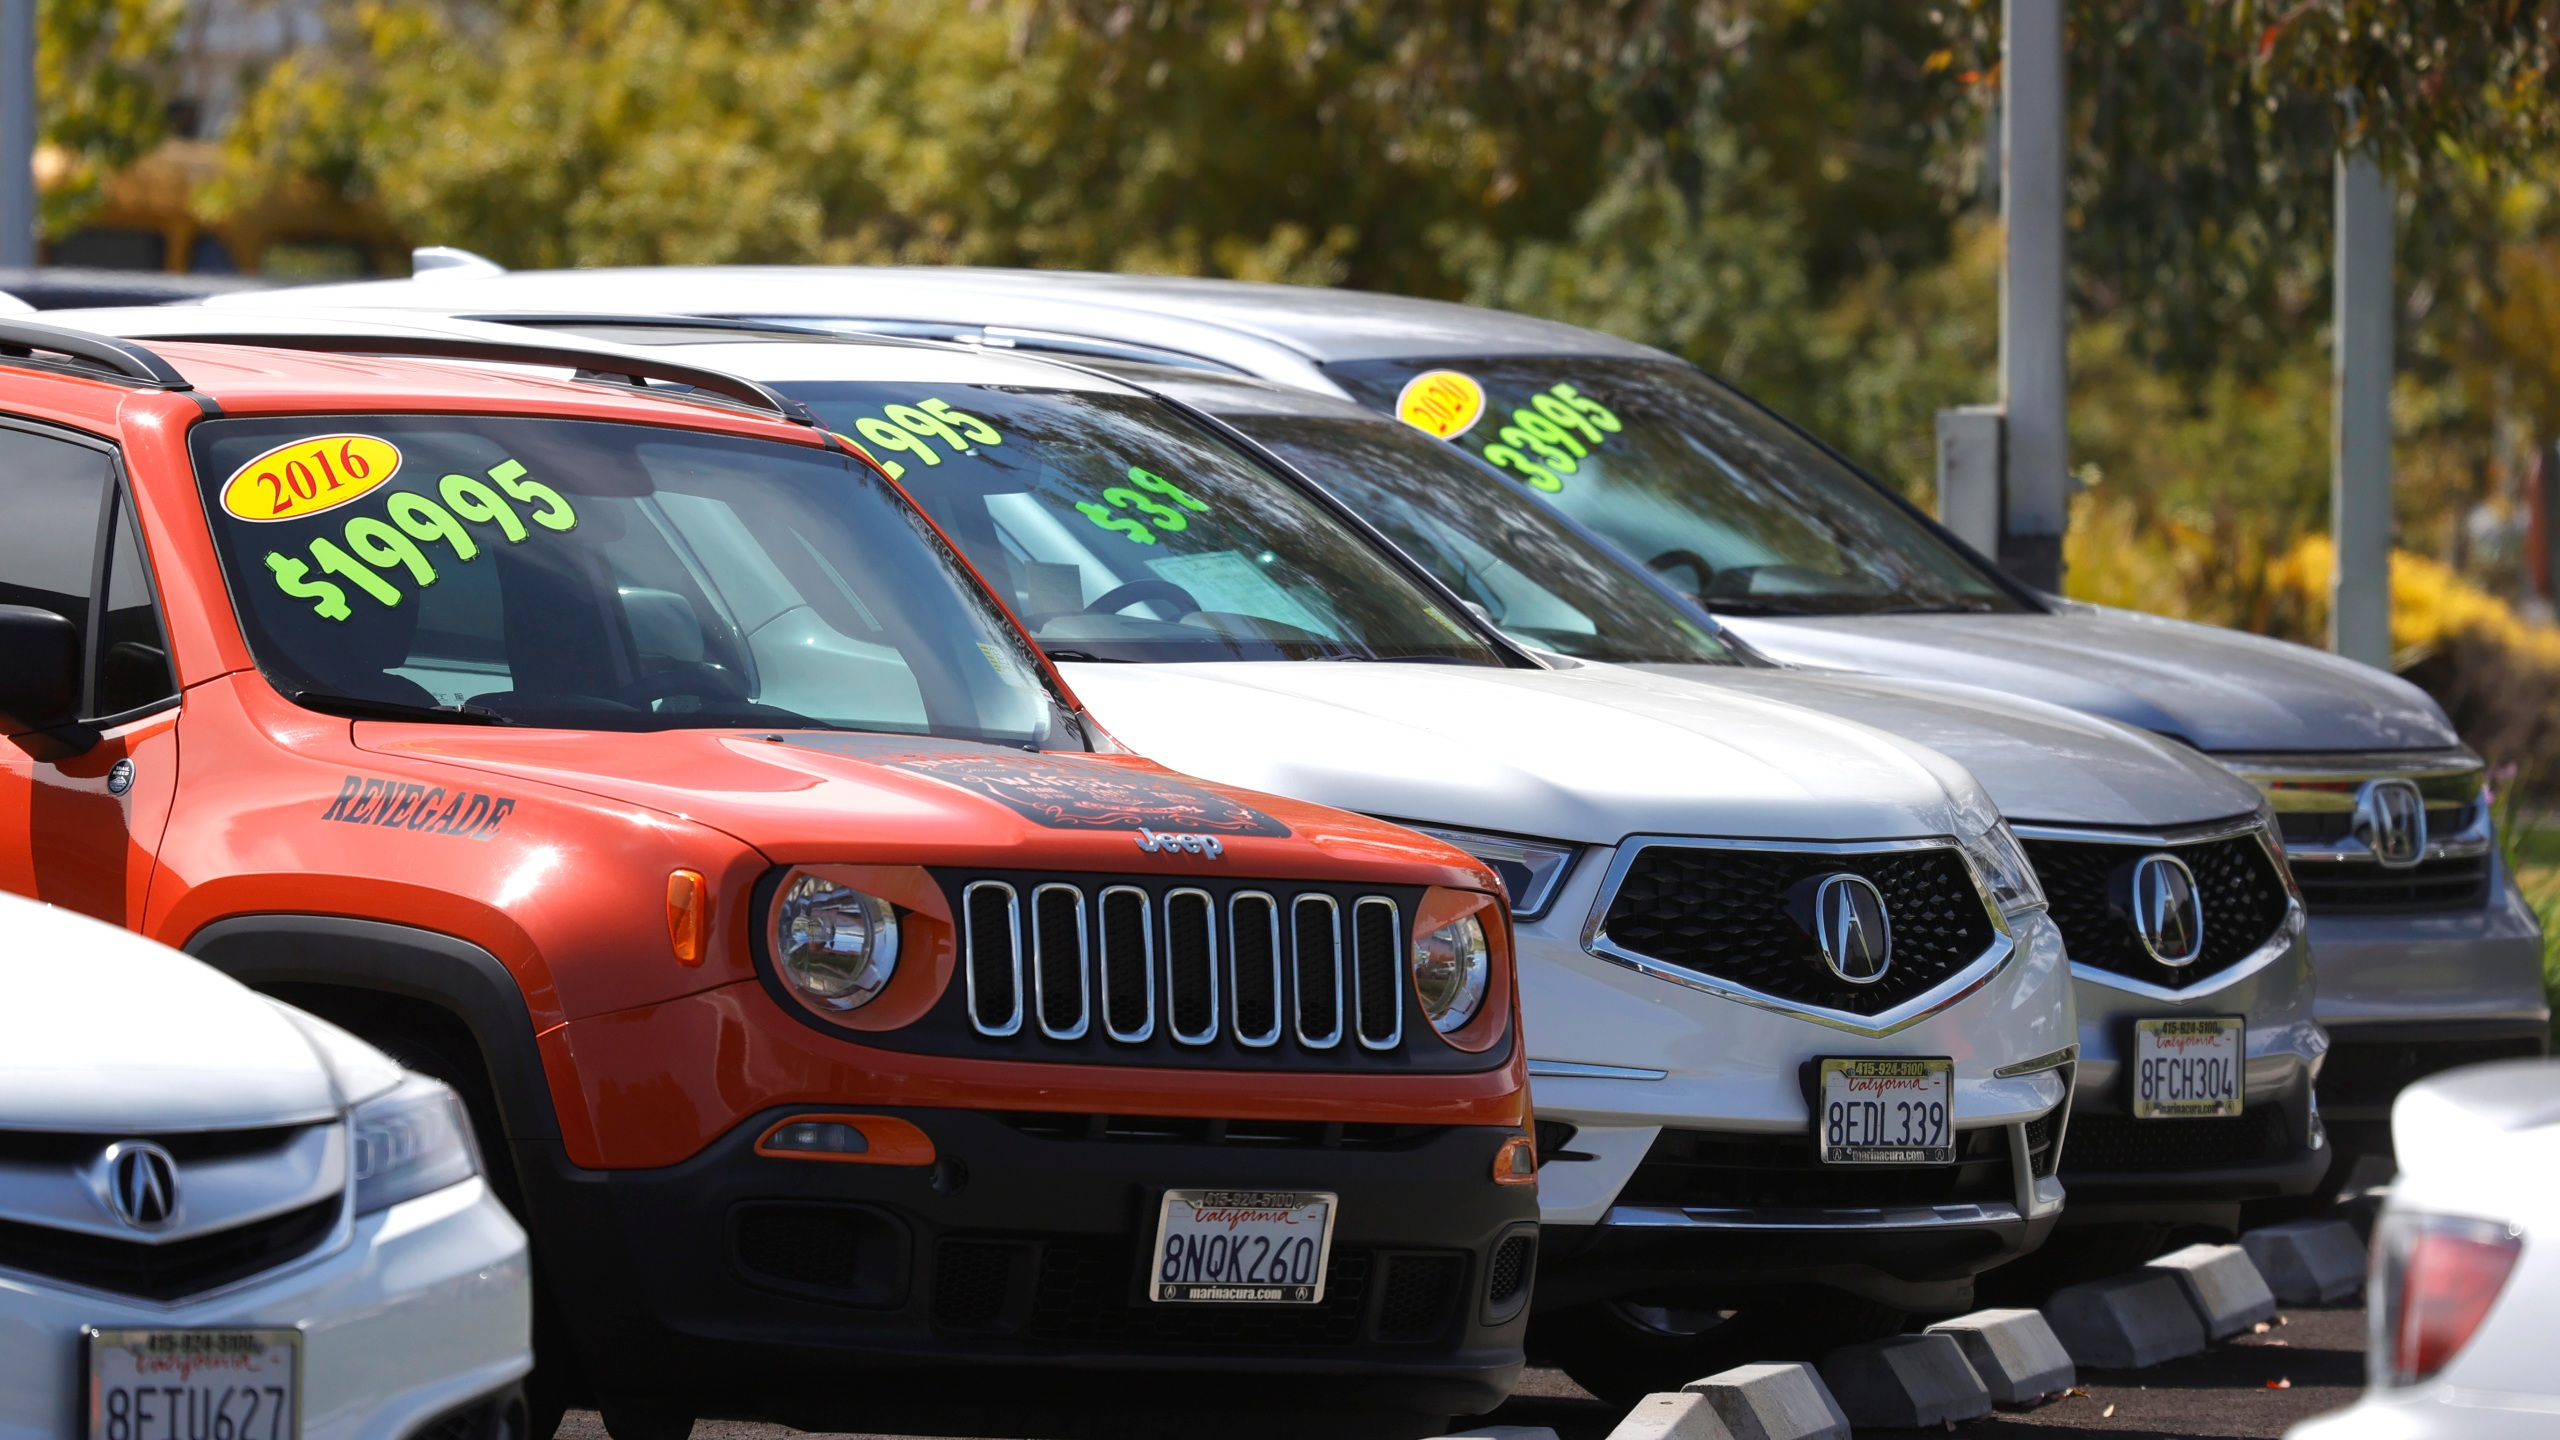 Used cars are displayed on the sales lot at Marin Acura on July 13, 2021 in Corte Madera, California. (Justin Sullivan/Getty Images)